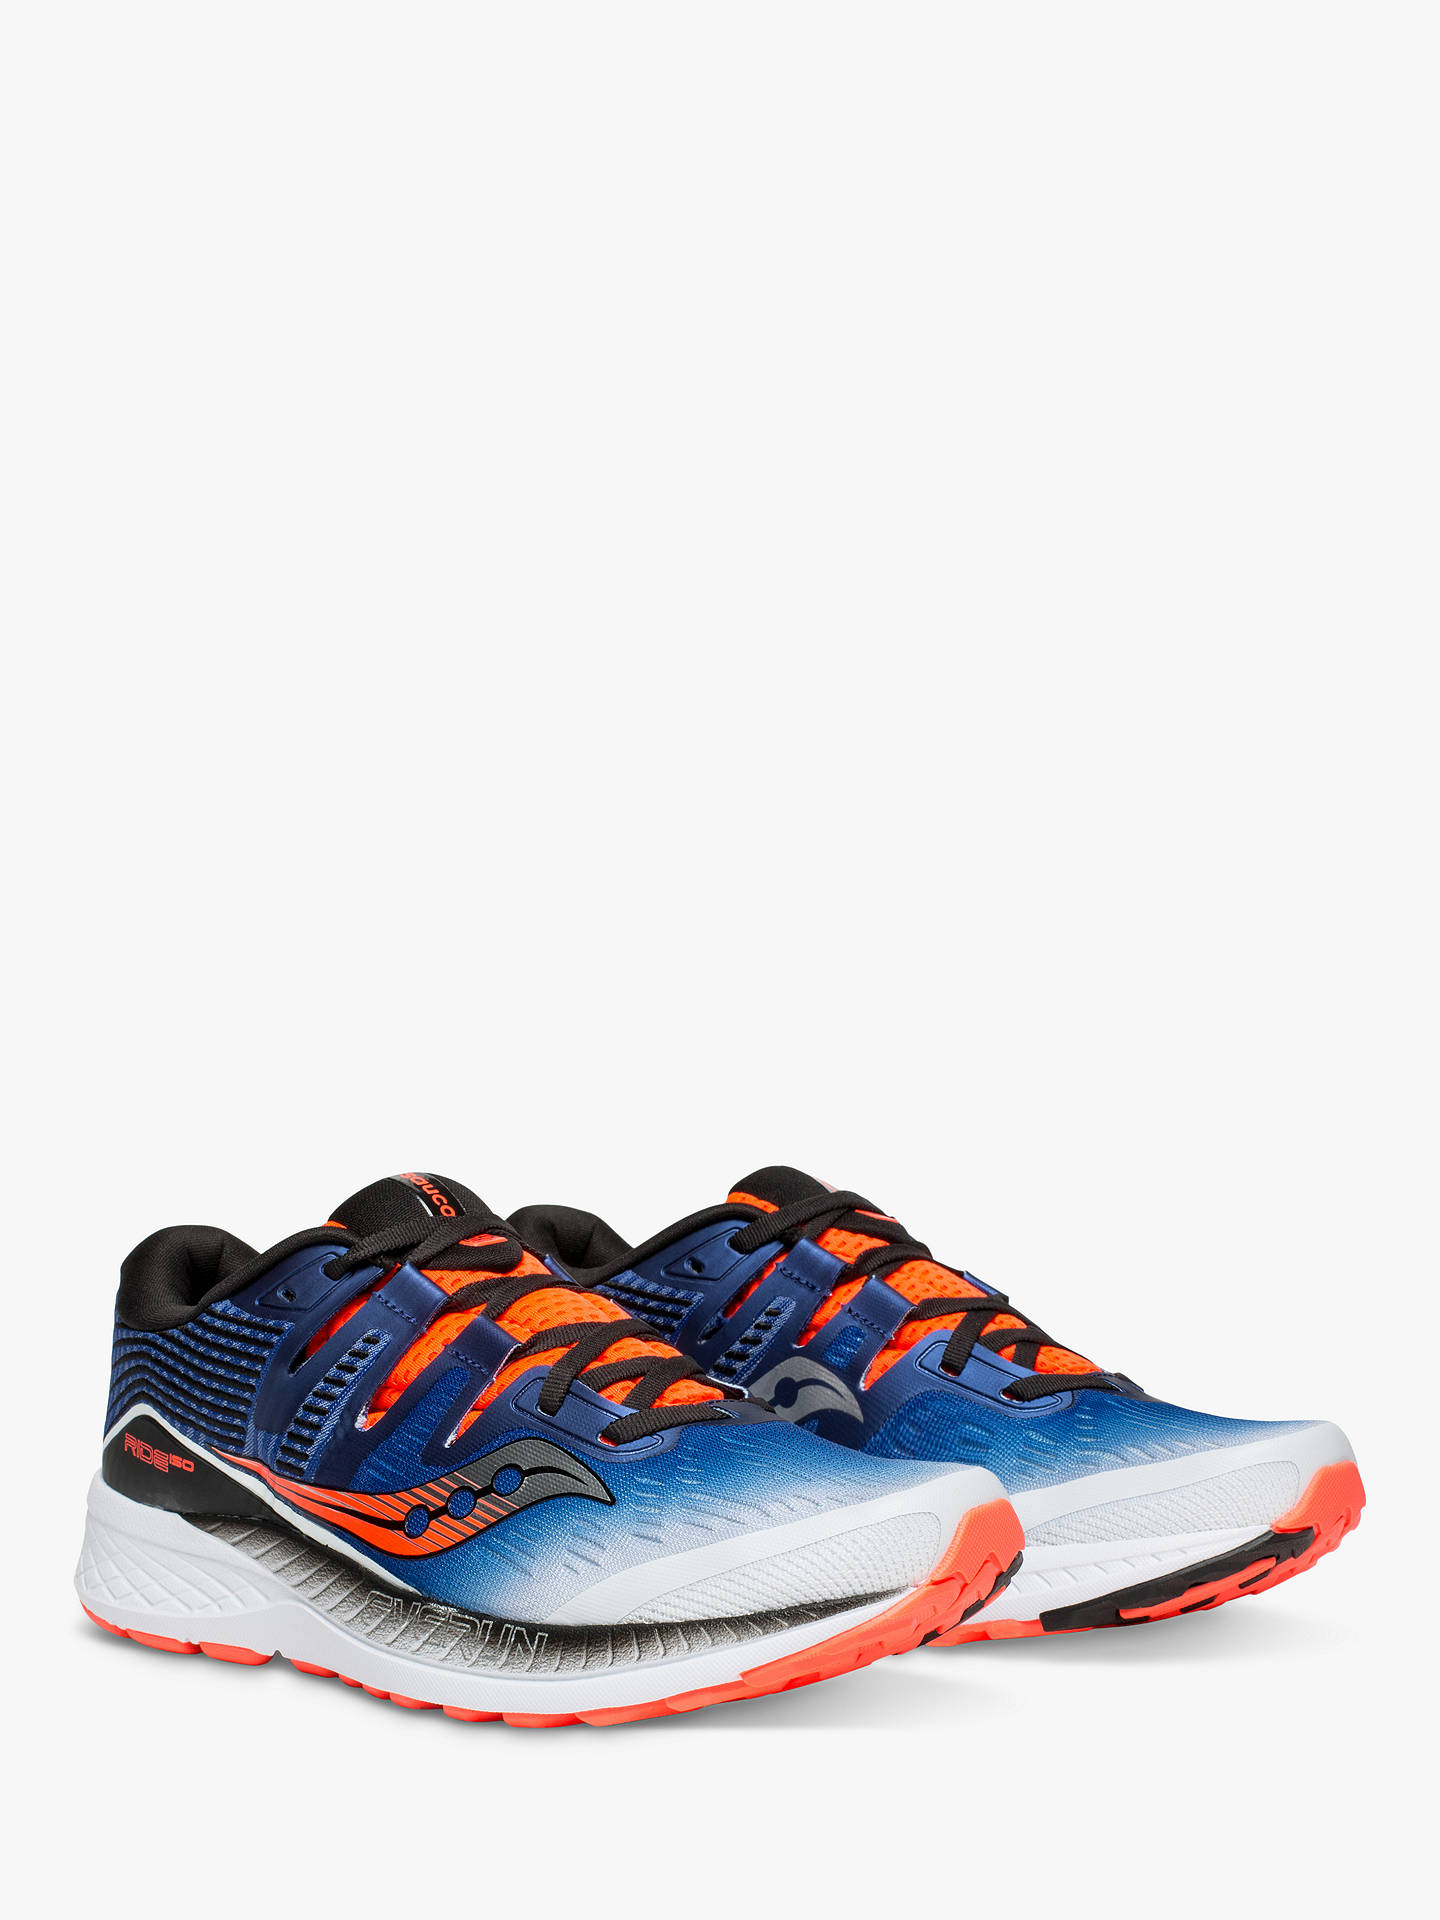 Buy Saucony Ride ISO Men's Running Shoes, White/Blue/Vizired, 7 Online at johnlewis.com